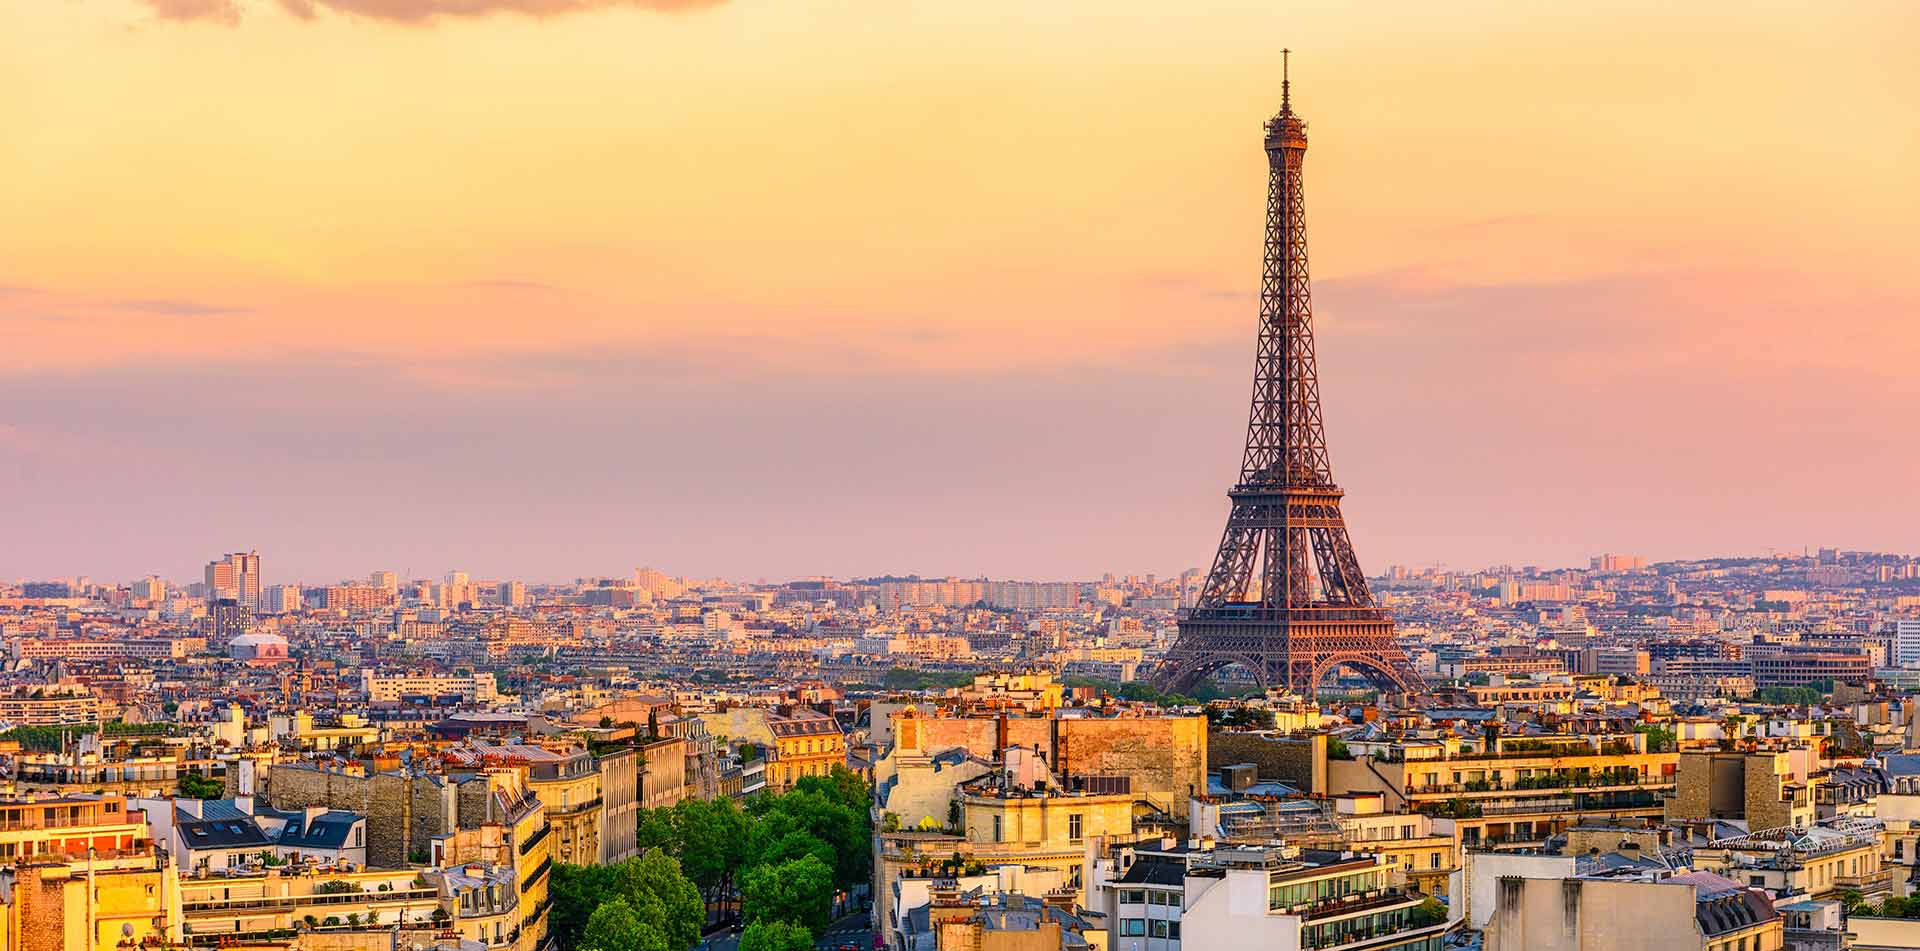 Europe France Paris beautiful colorful sunset scenic city skyline with historic Eiffel Tower - luxury vacation destinations